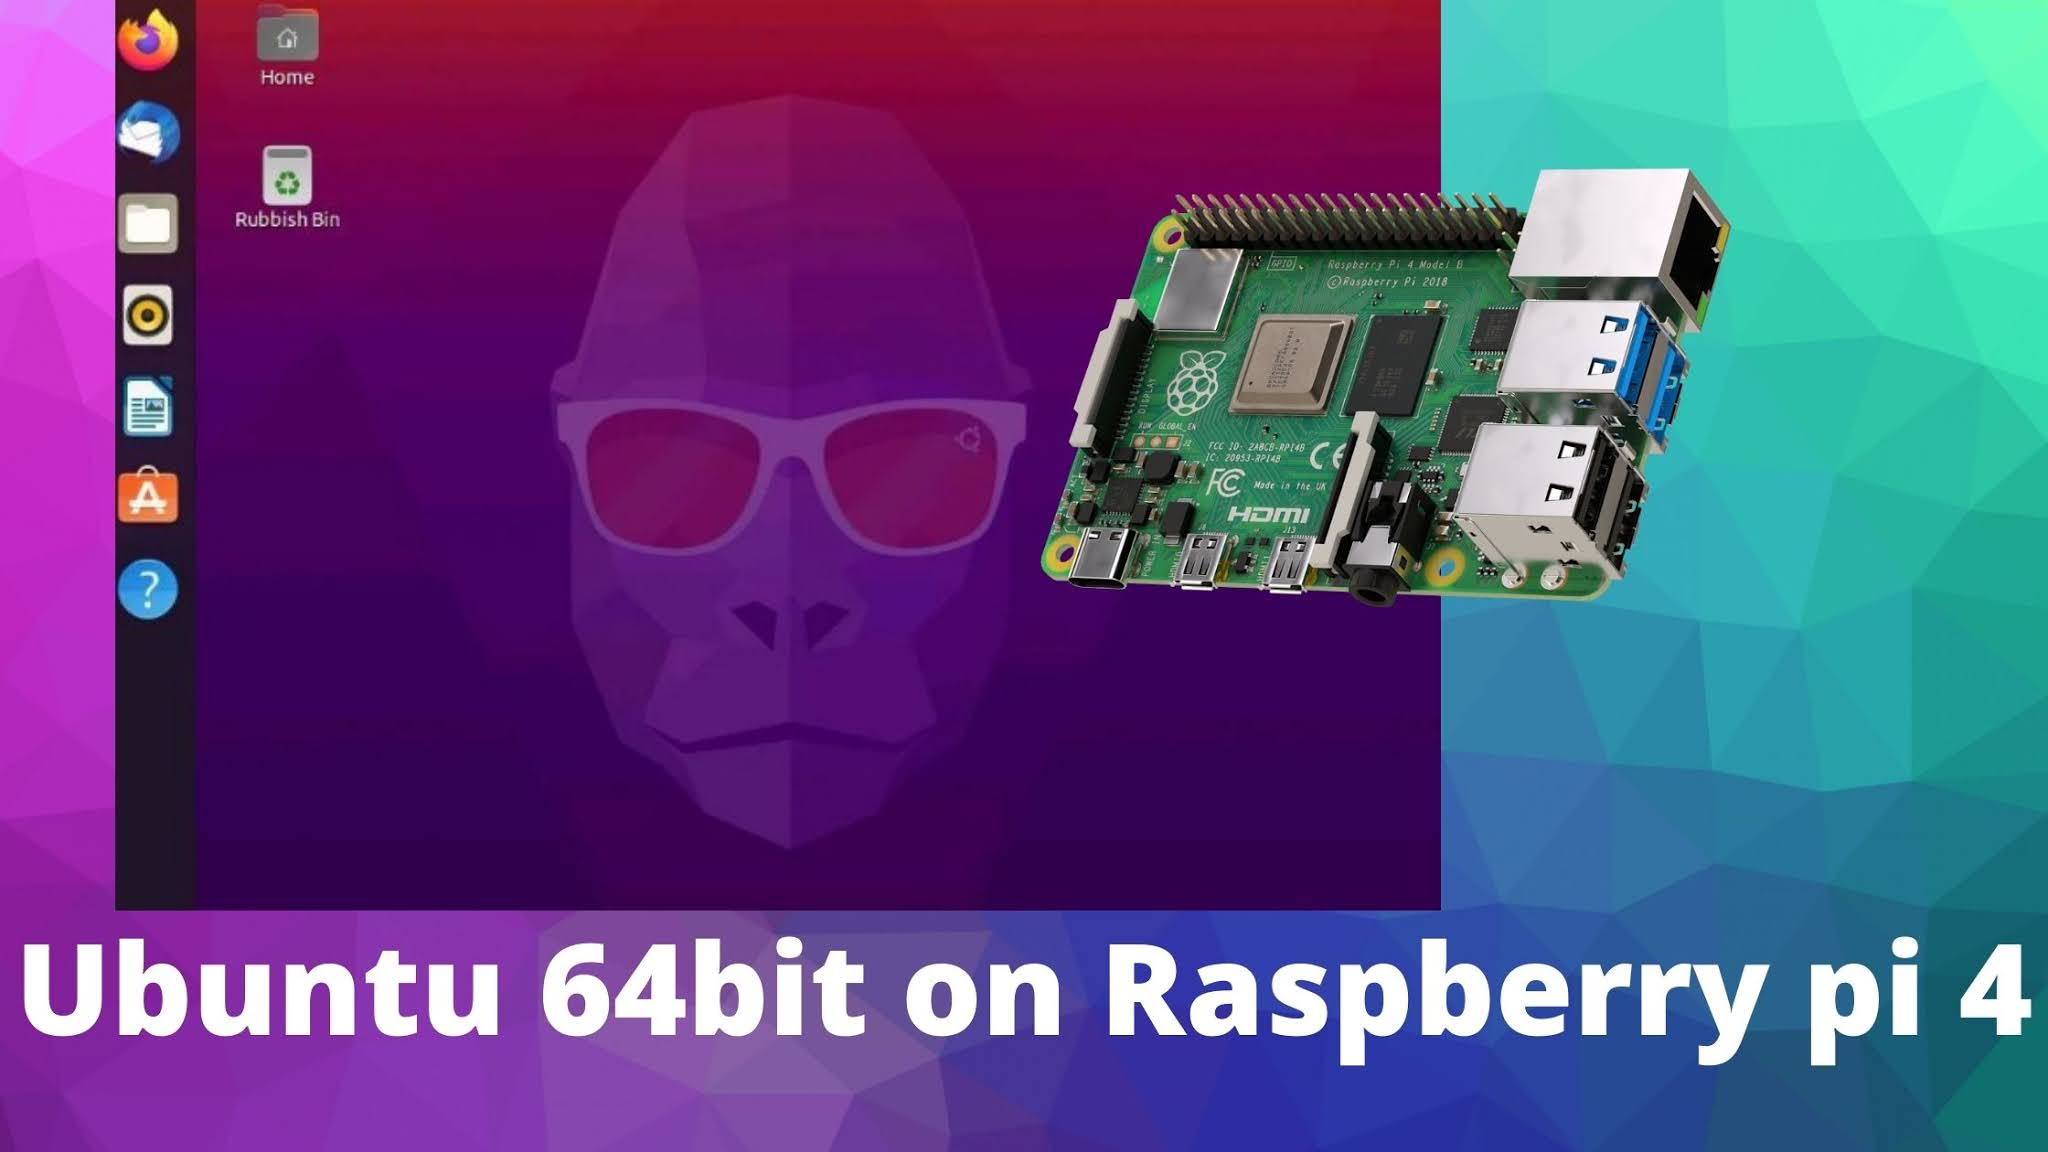 Ubuntu 20.10 for Raspberry pi 4 - Take it as it come